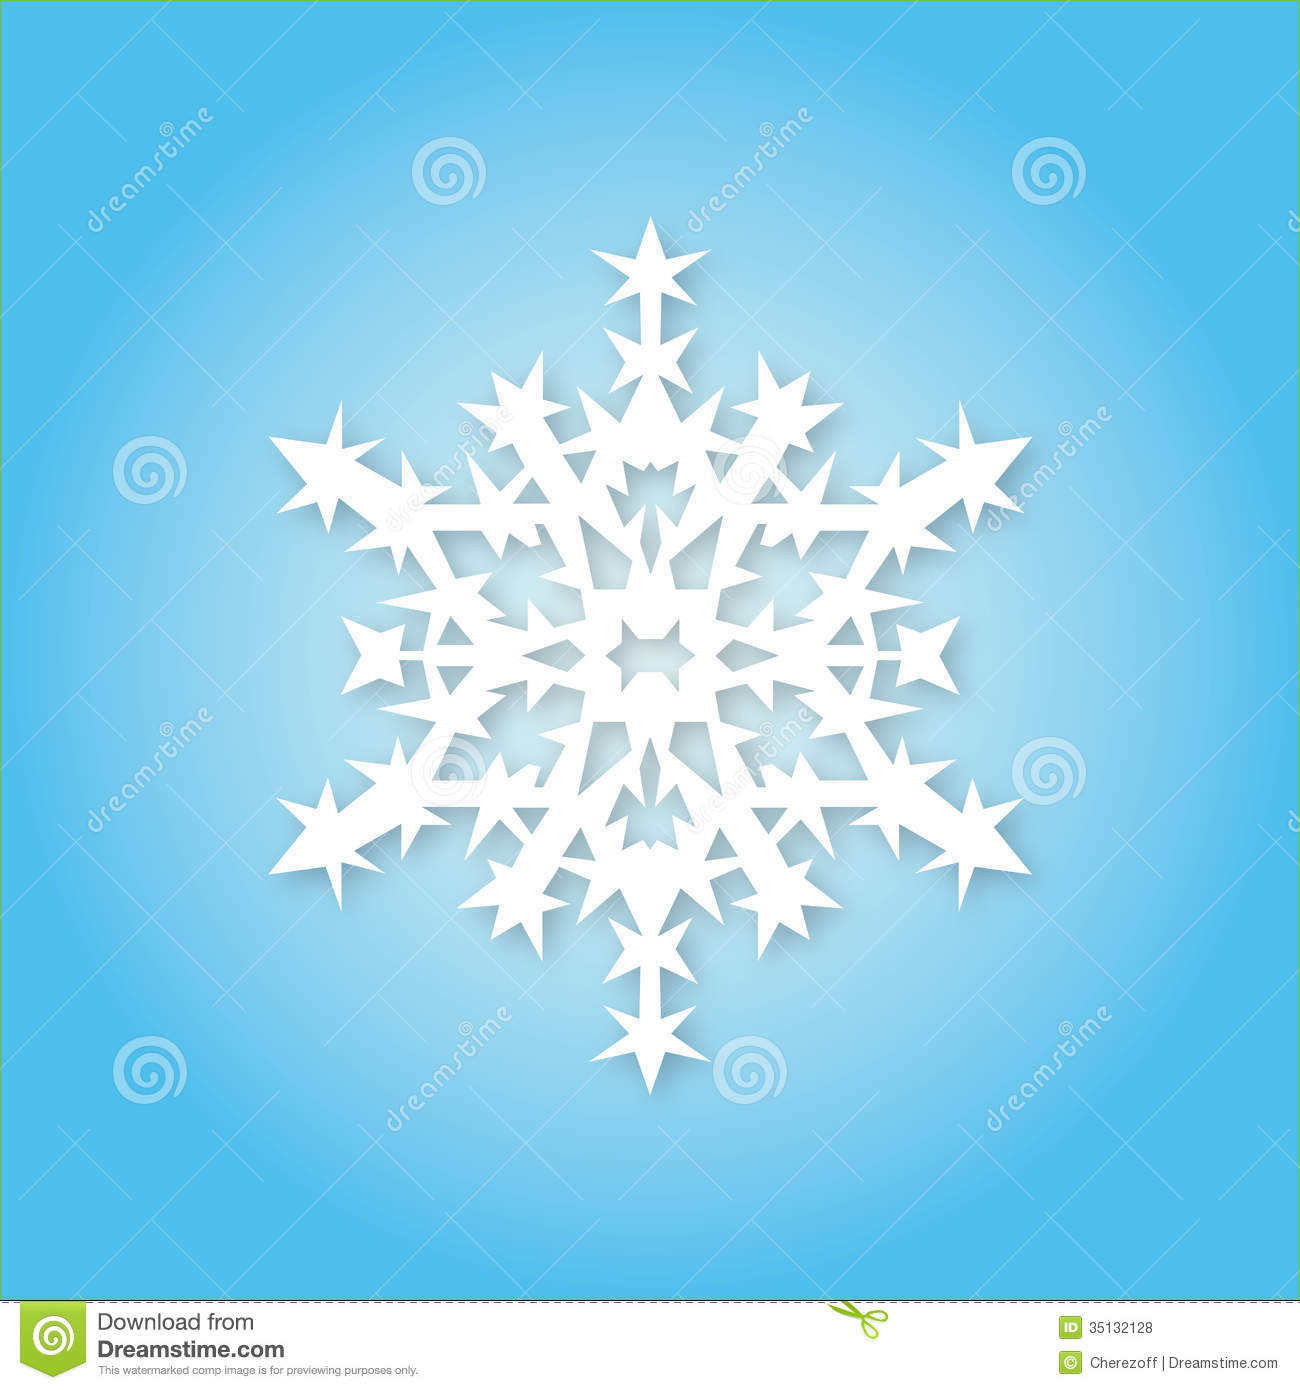 More similar stock images of ` White snowflake on blue background `